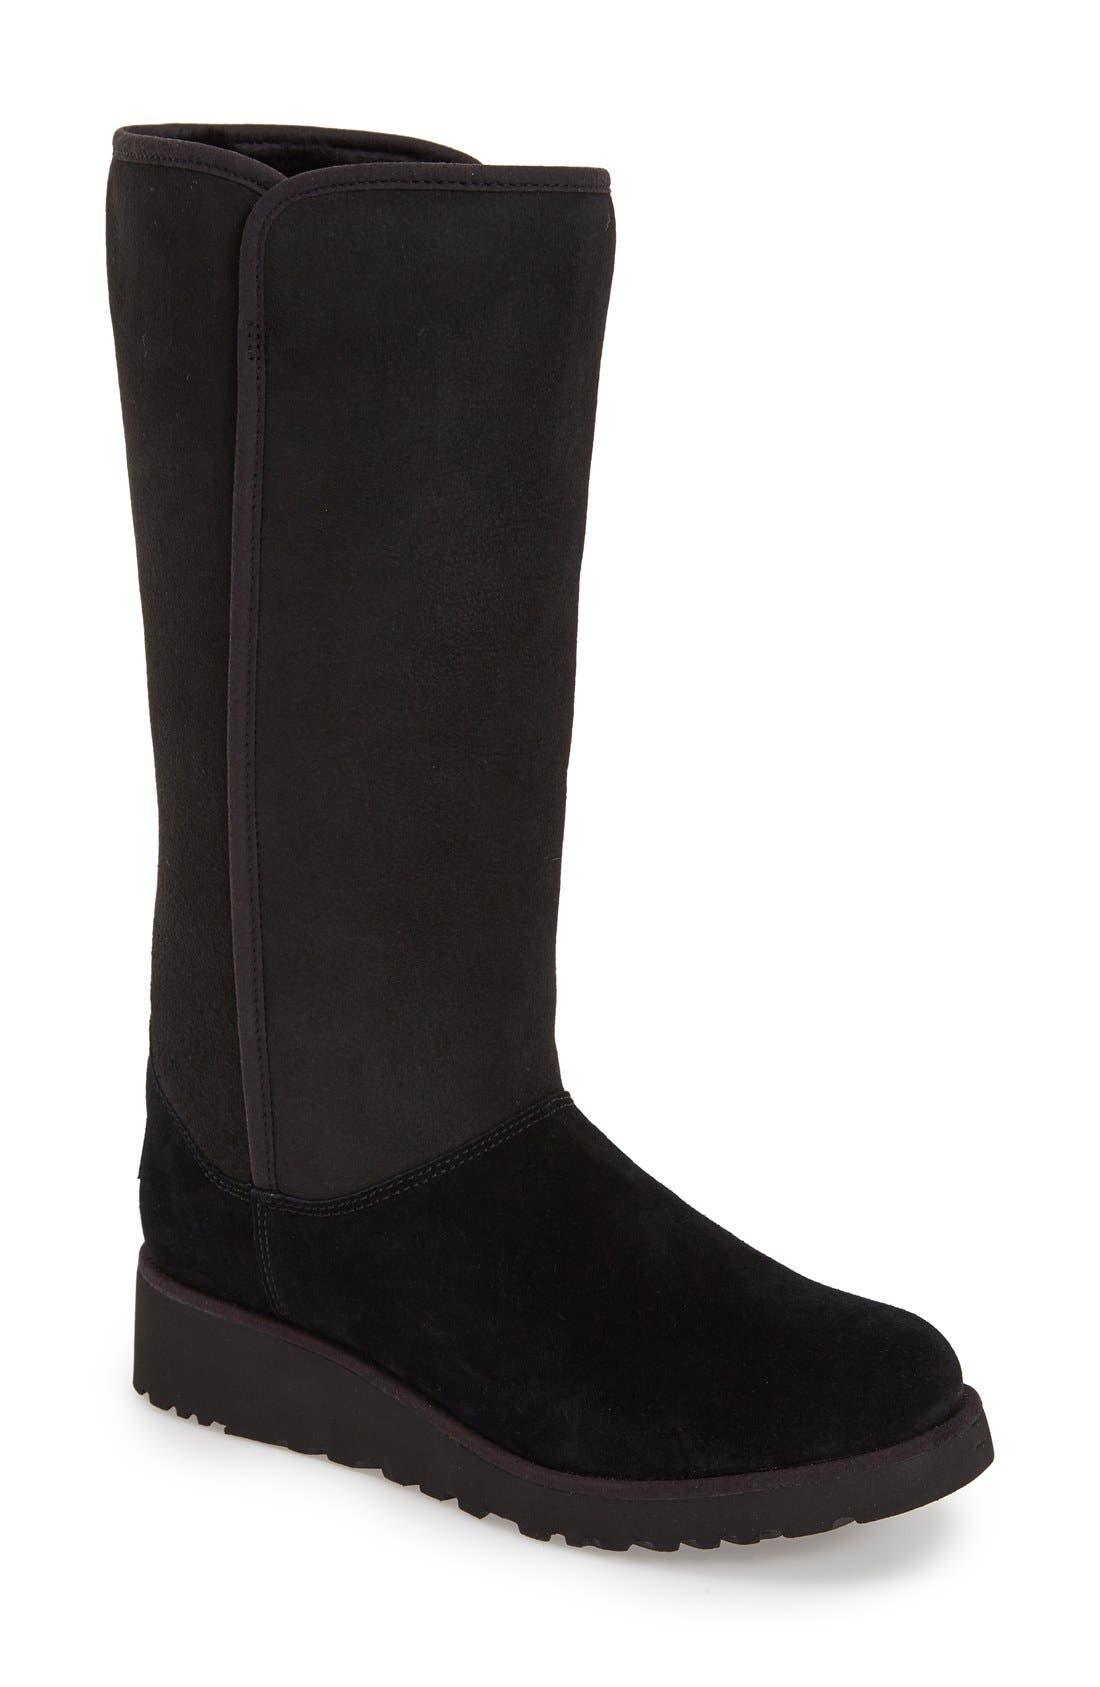 Main Image - UGG® Kara - Classic Slim™ Water Resistant Tall Boot (Women)